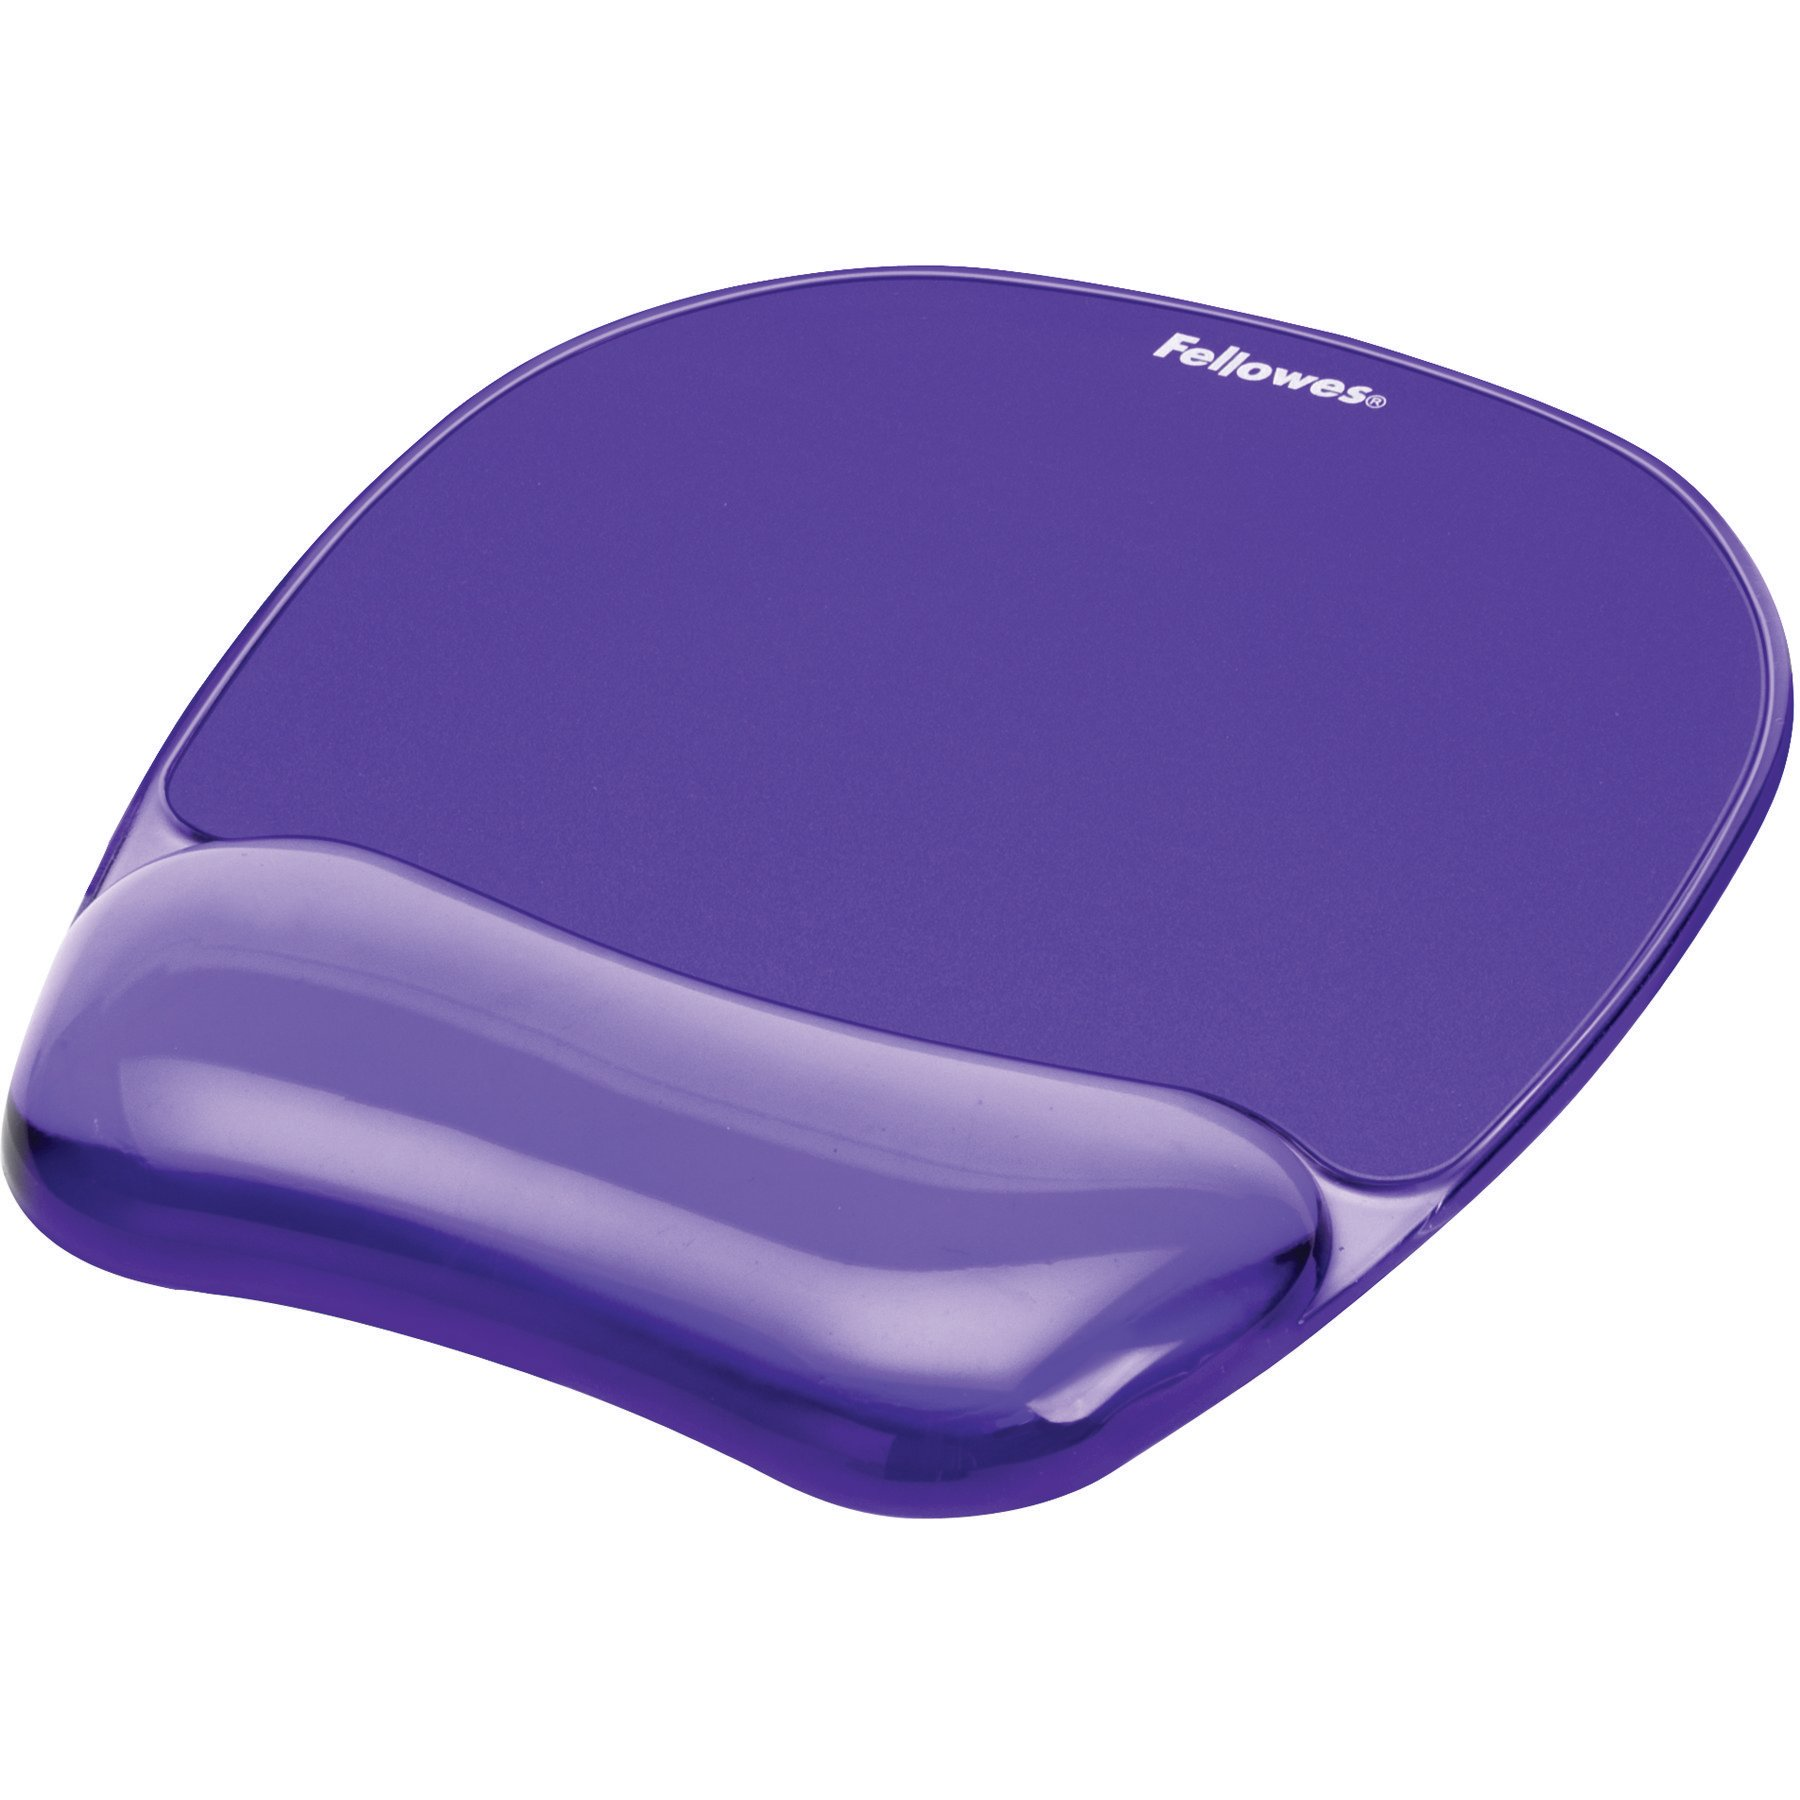 Gel Crystal Transparent Mousepad and Wrist Rest - Purple by Fellowes